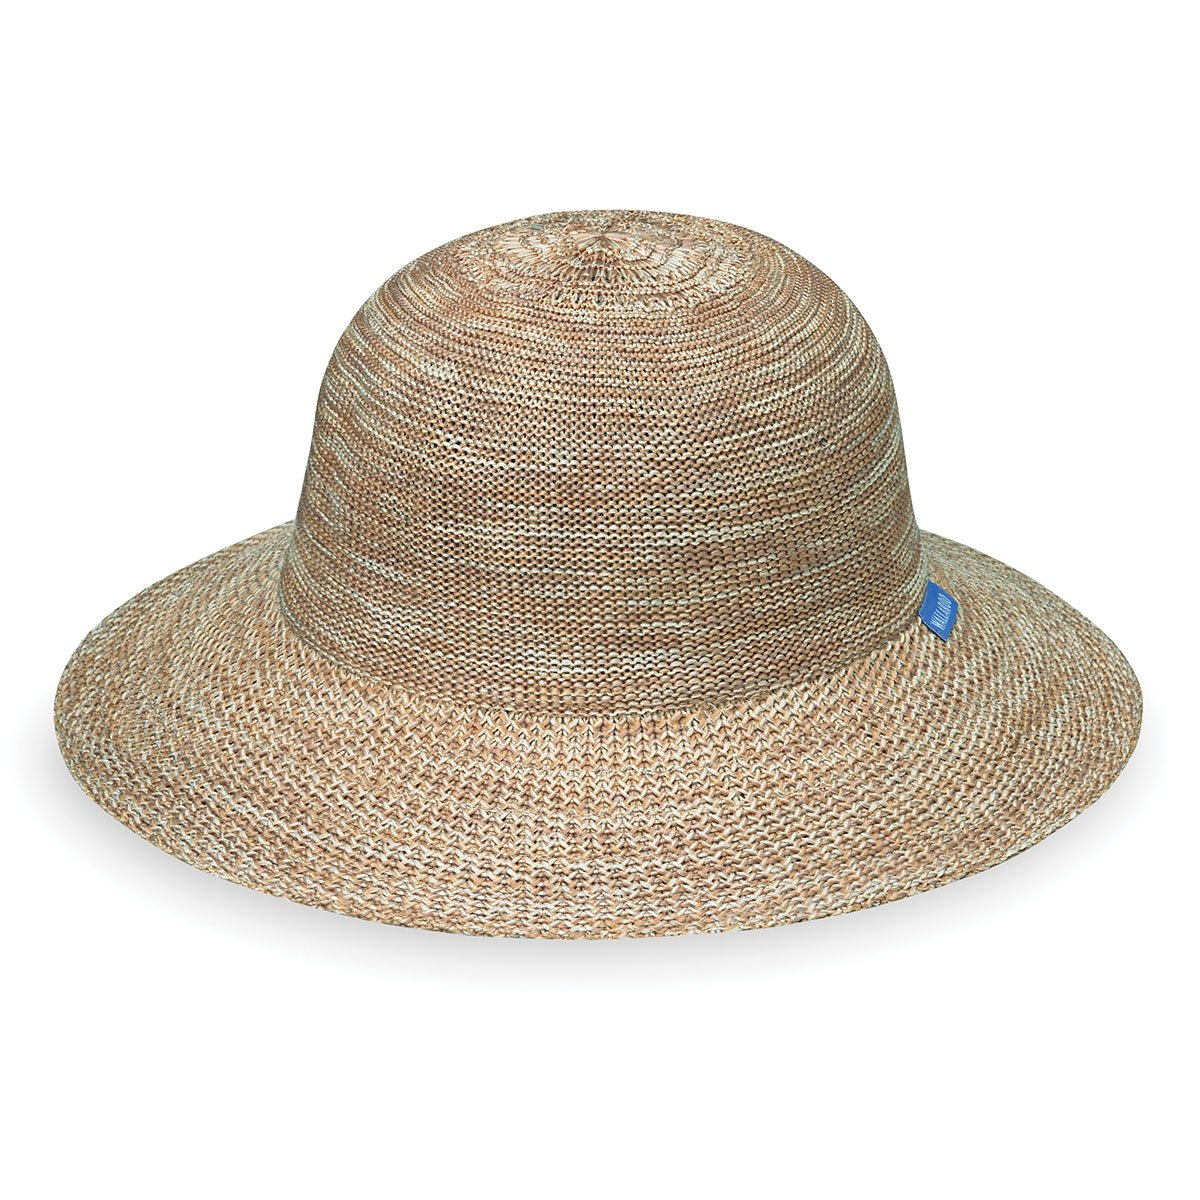 Wallaroo Hat Company Women's Victoria Sport Hat - Sporty and Compact - Mixed Camel